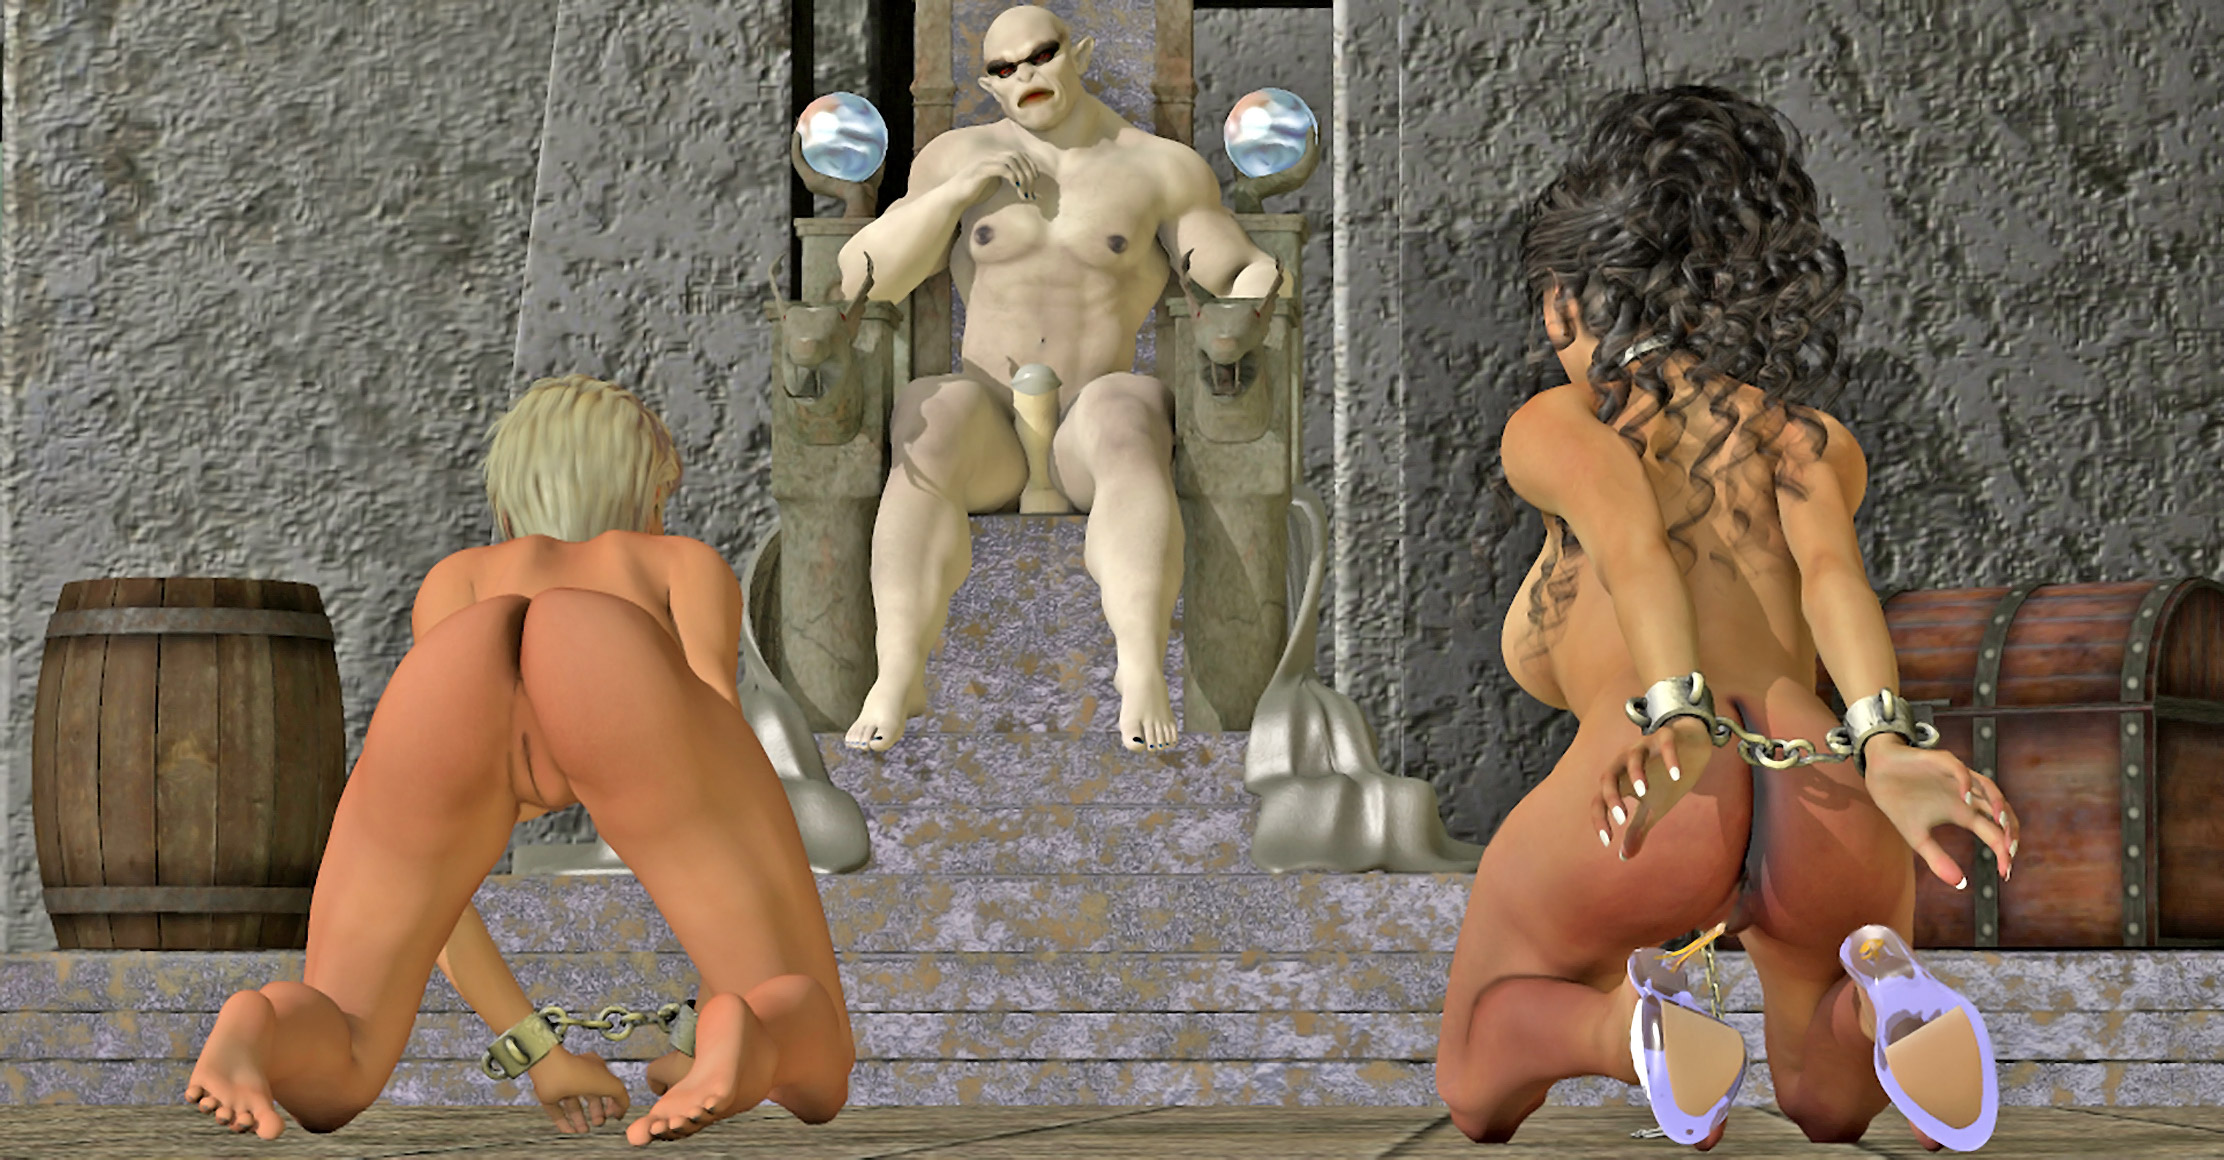 3d cartoon porn monsters vs aliens nude comics